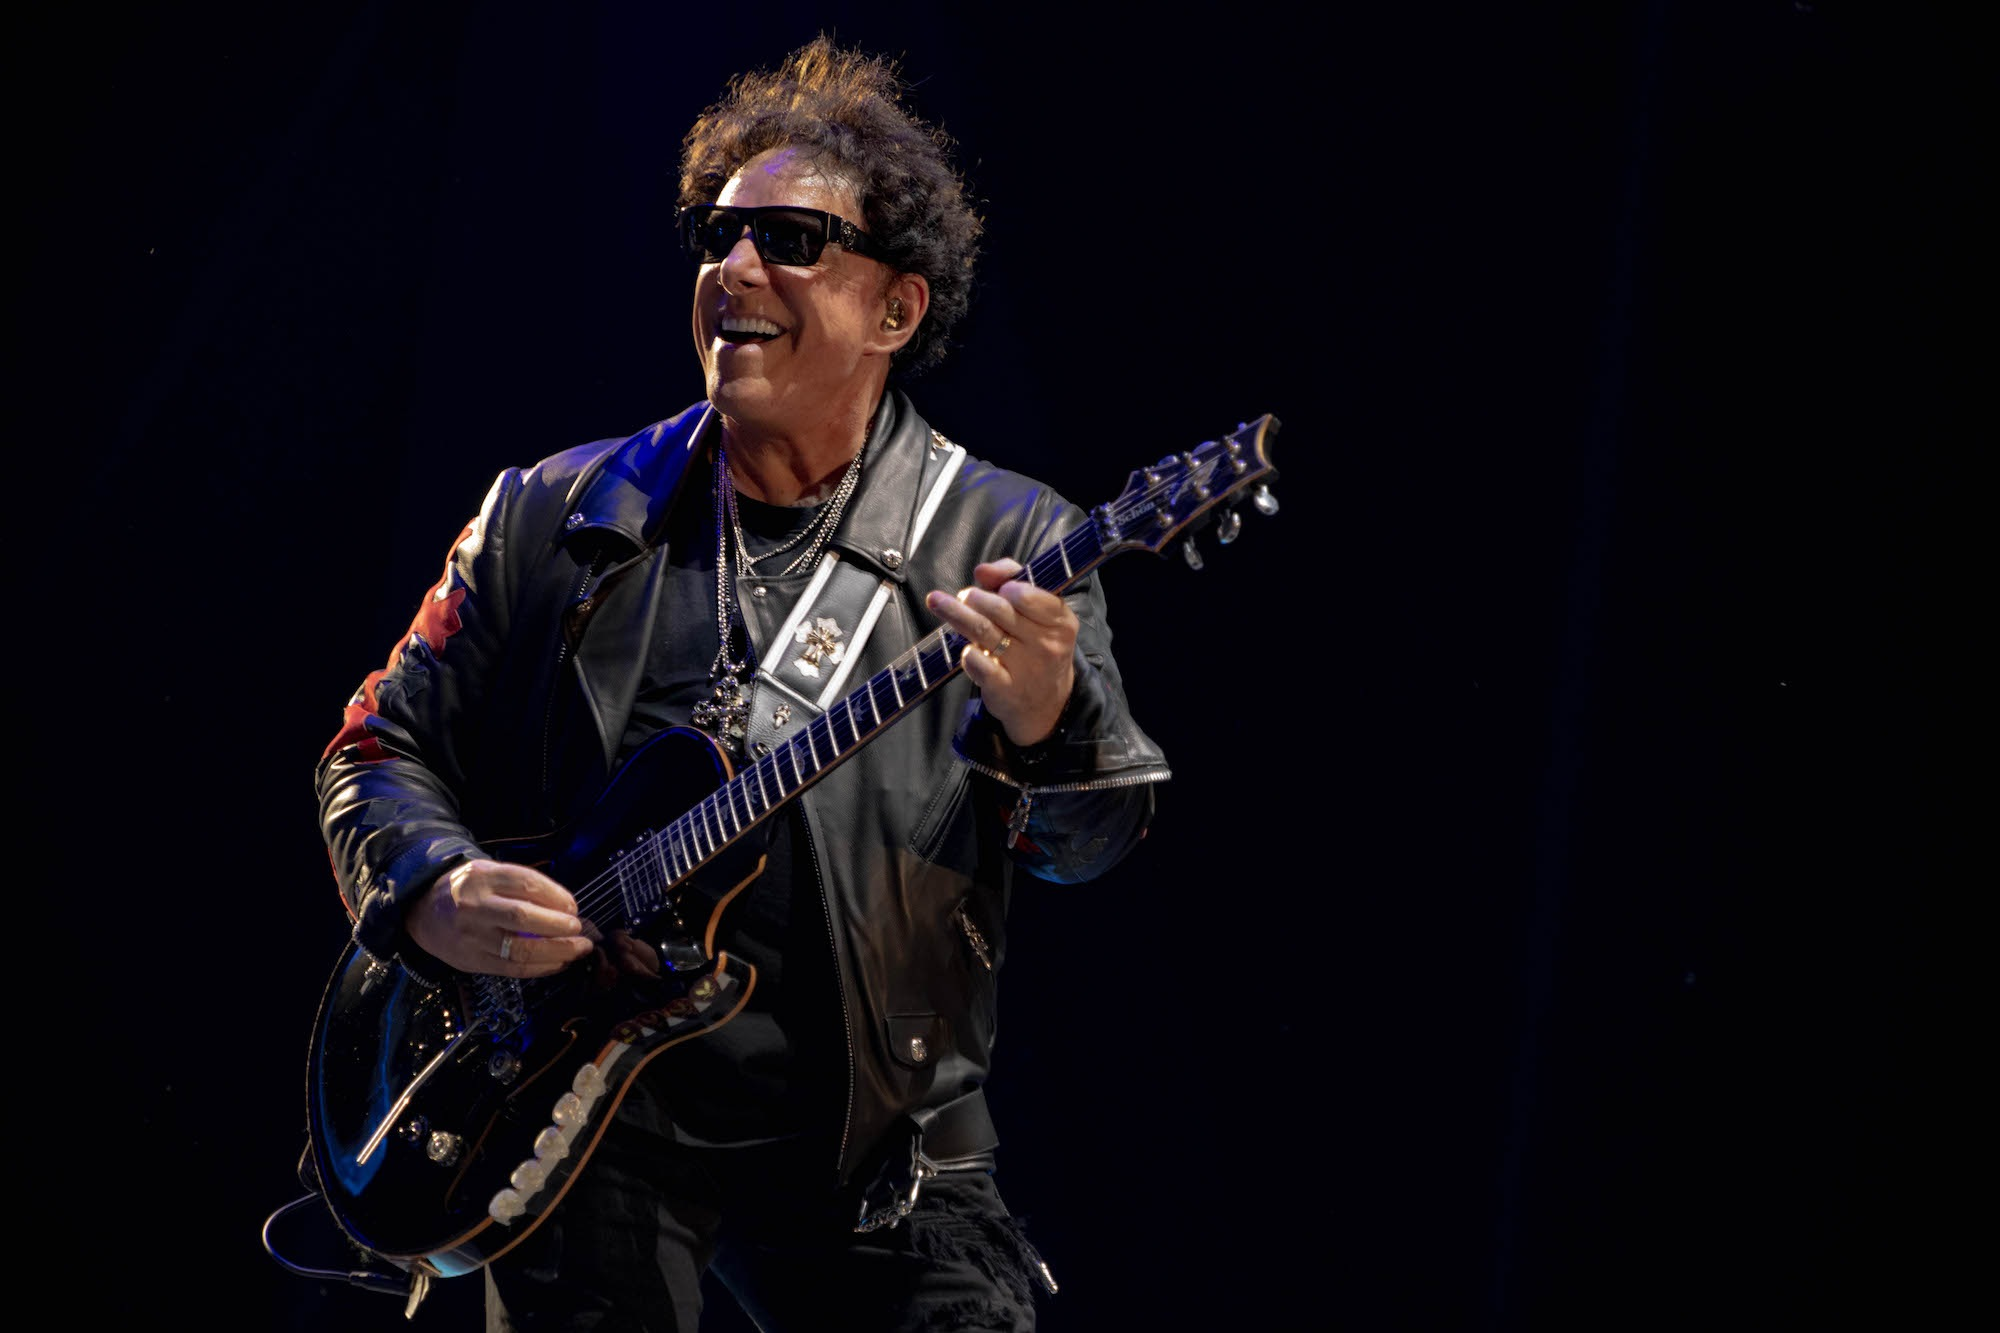 Journey Live at Lollapalooza [GALLERY] 23